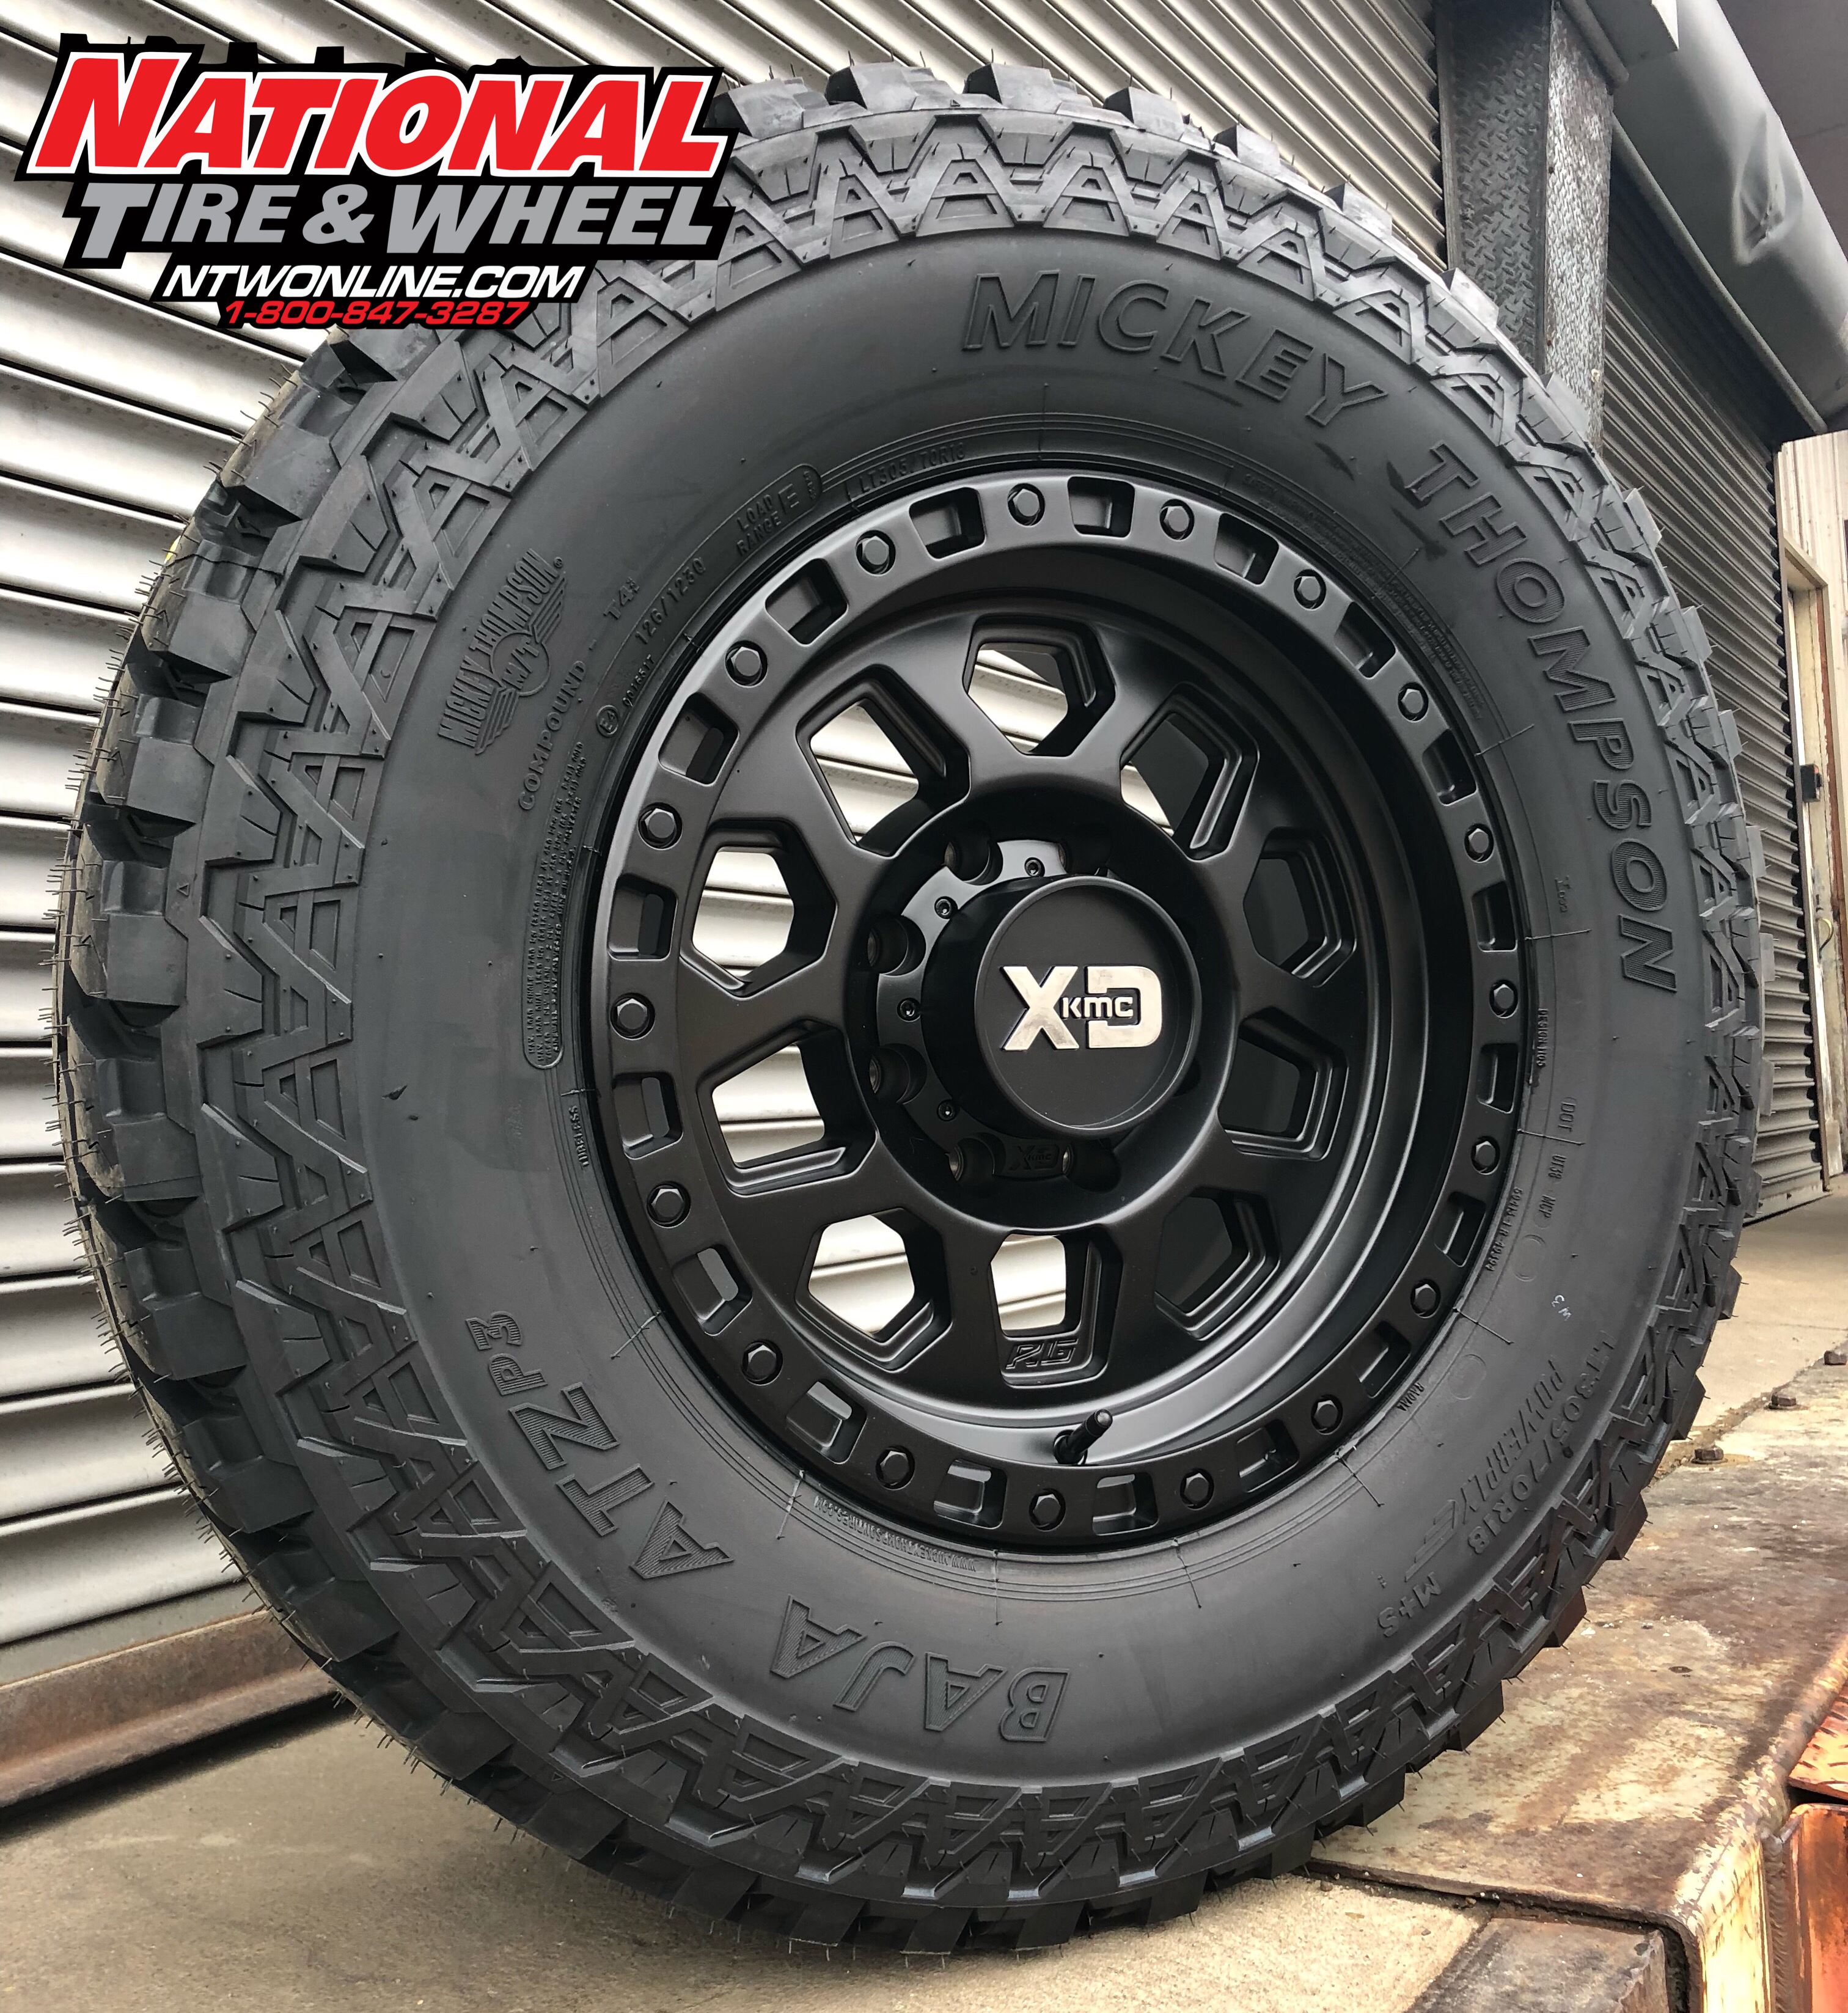 18x9 Xd Series 132 Rg2 Mounted Up To A 305x70r18 Mickey Thompson Atz